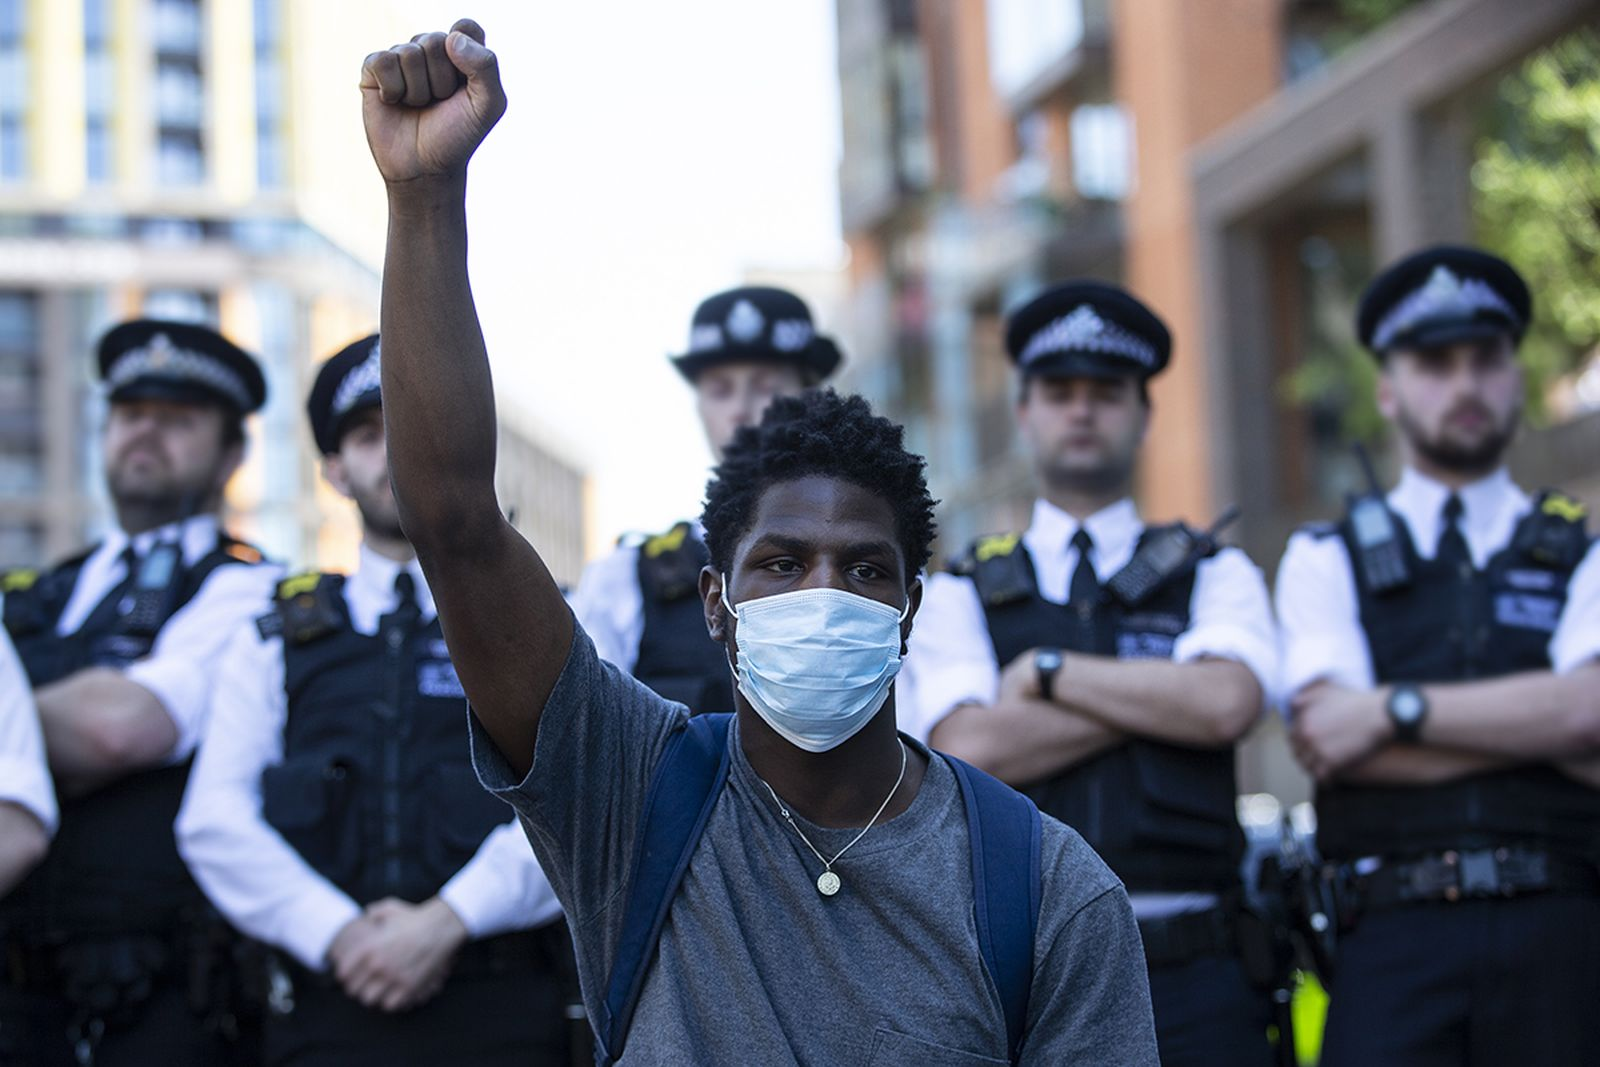 people join in a spontaneous Black Lives Matter march through central London to protest the death of George Floyd